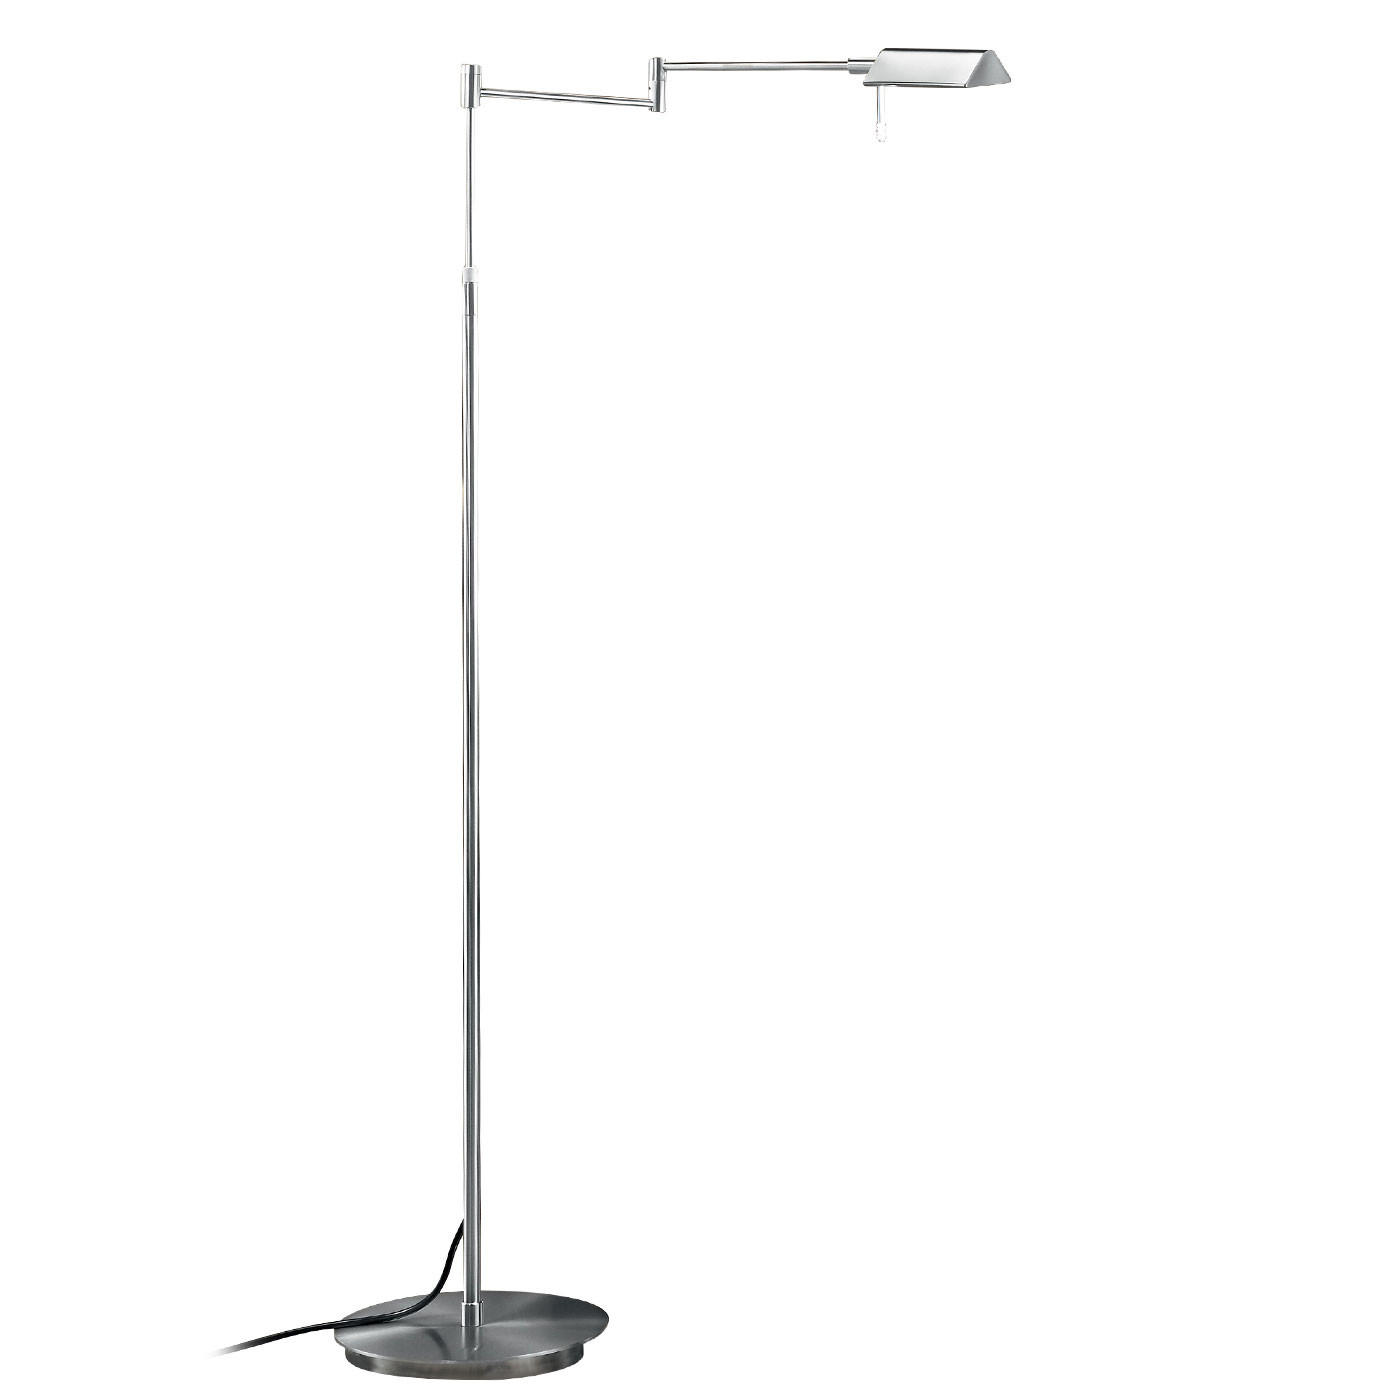 Holtkötter 9614 At Nostraforma, Floor Lamp With Dimmer Switch And Adjustable Arm